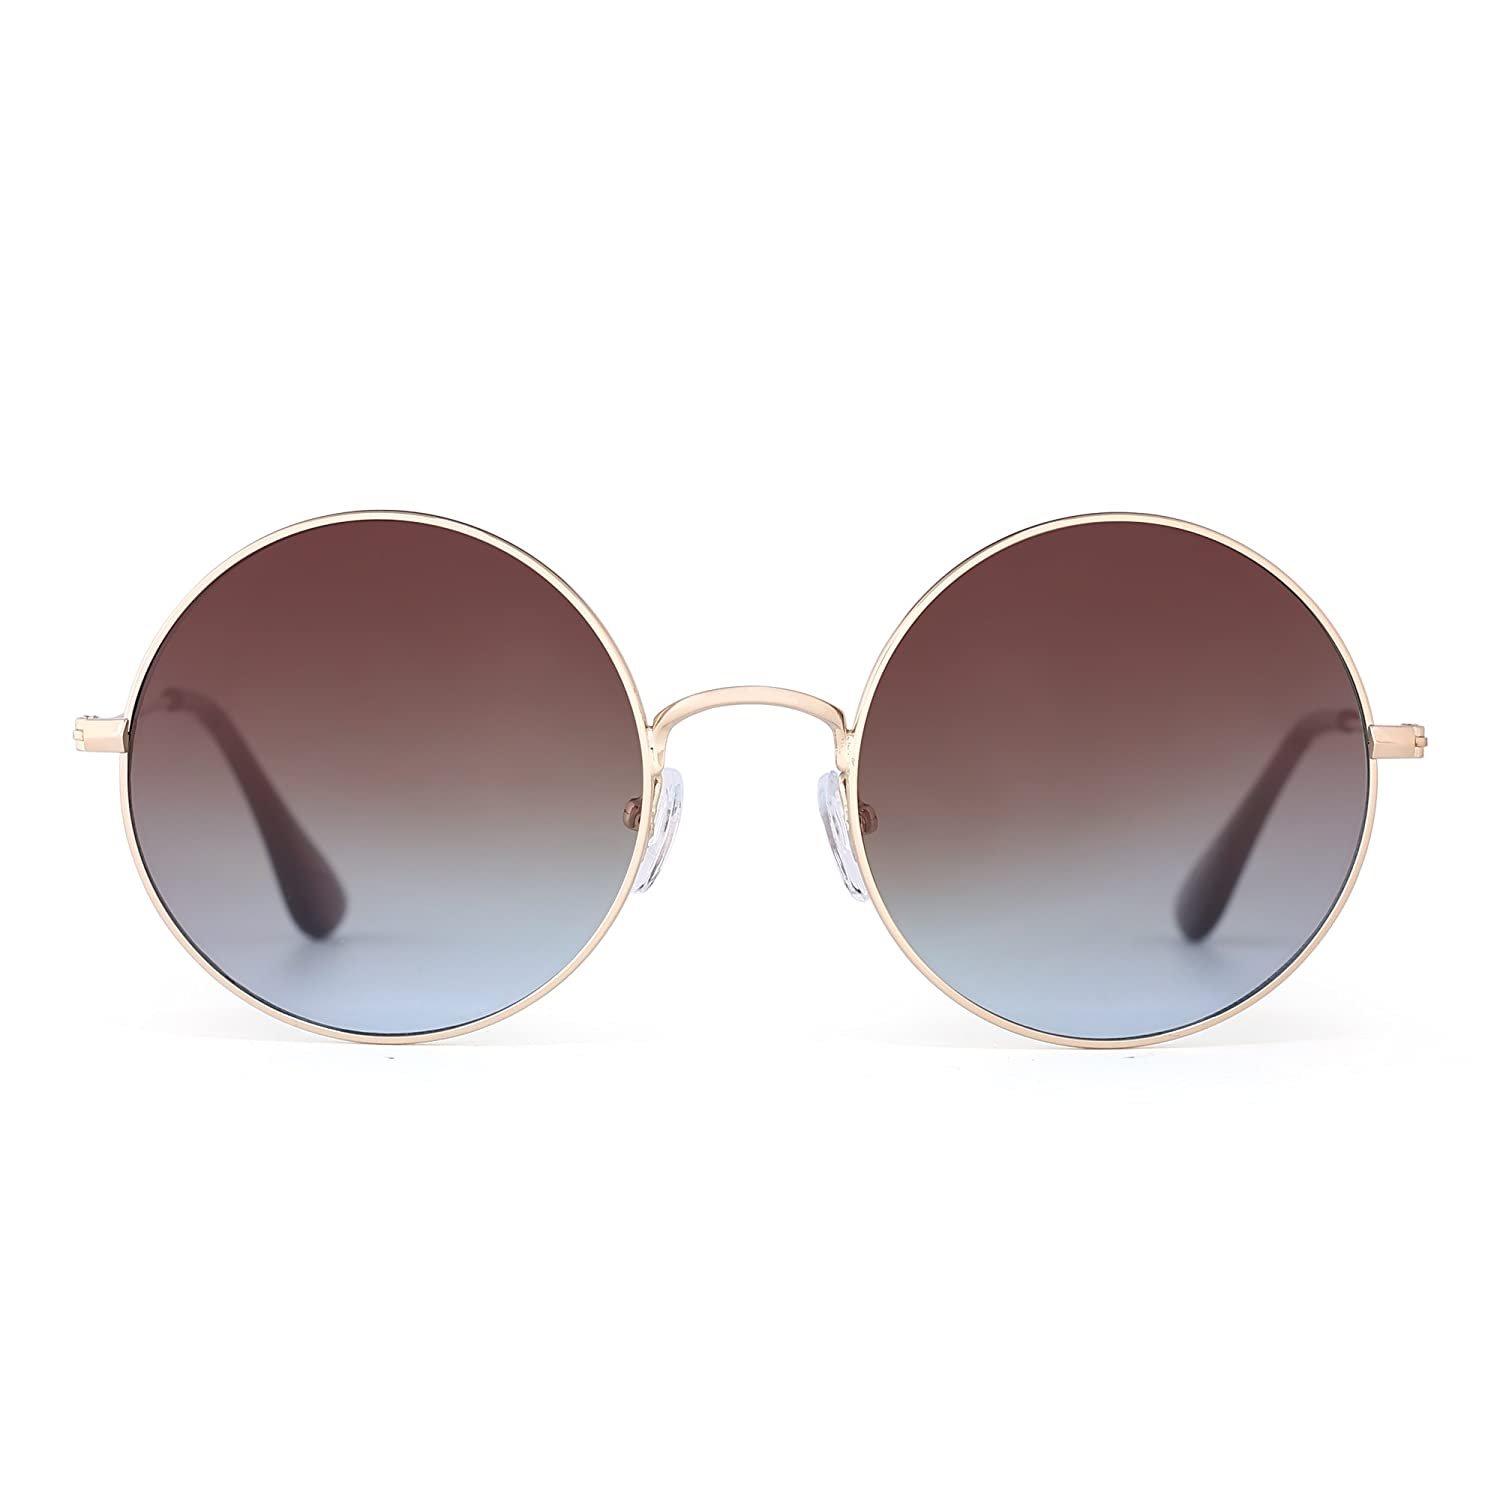 Retro Round Metal Sunglasses Women Men Flash Mirror Reflective Circle Lens UV400 JM BAX0016 C4